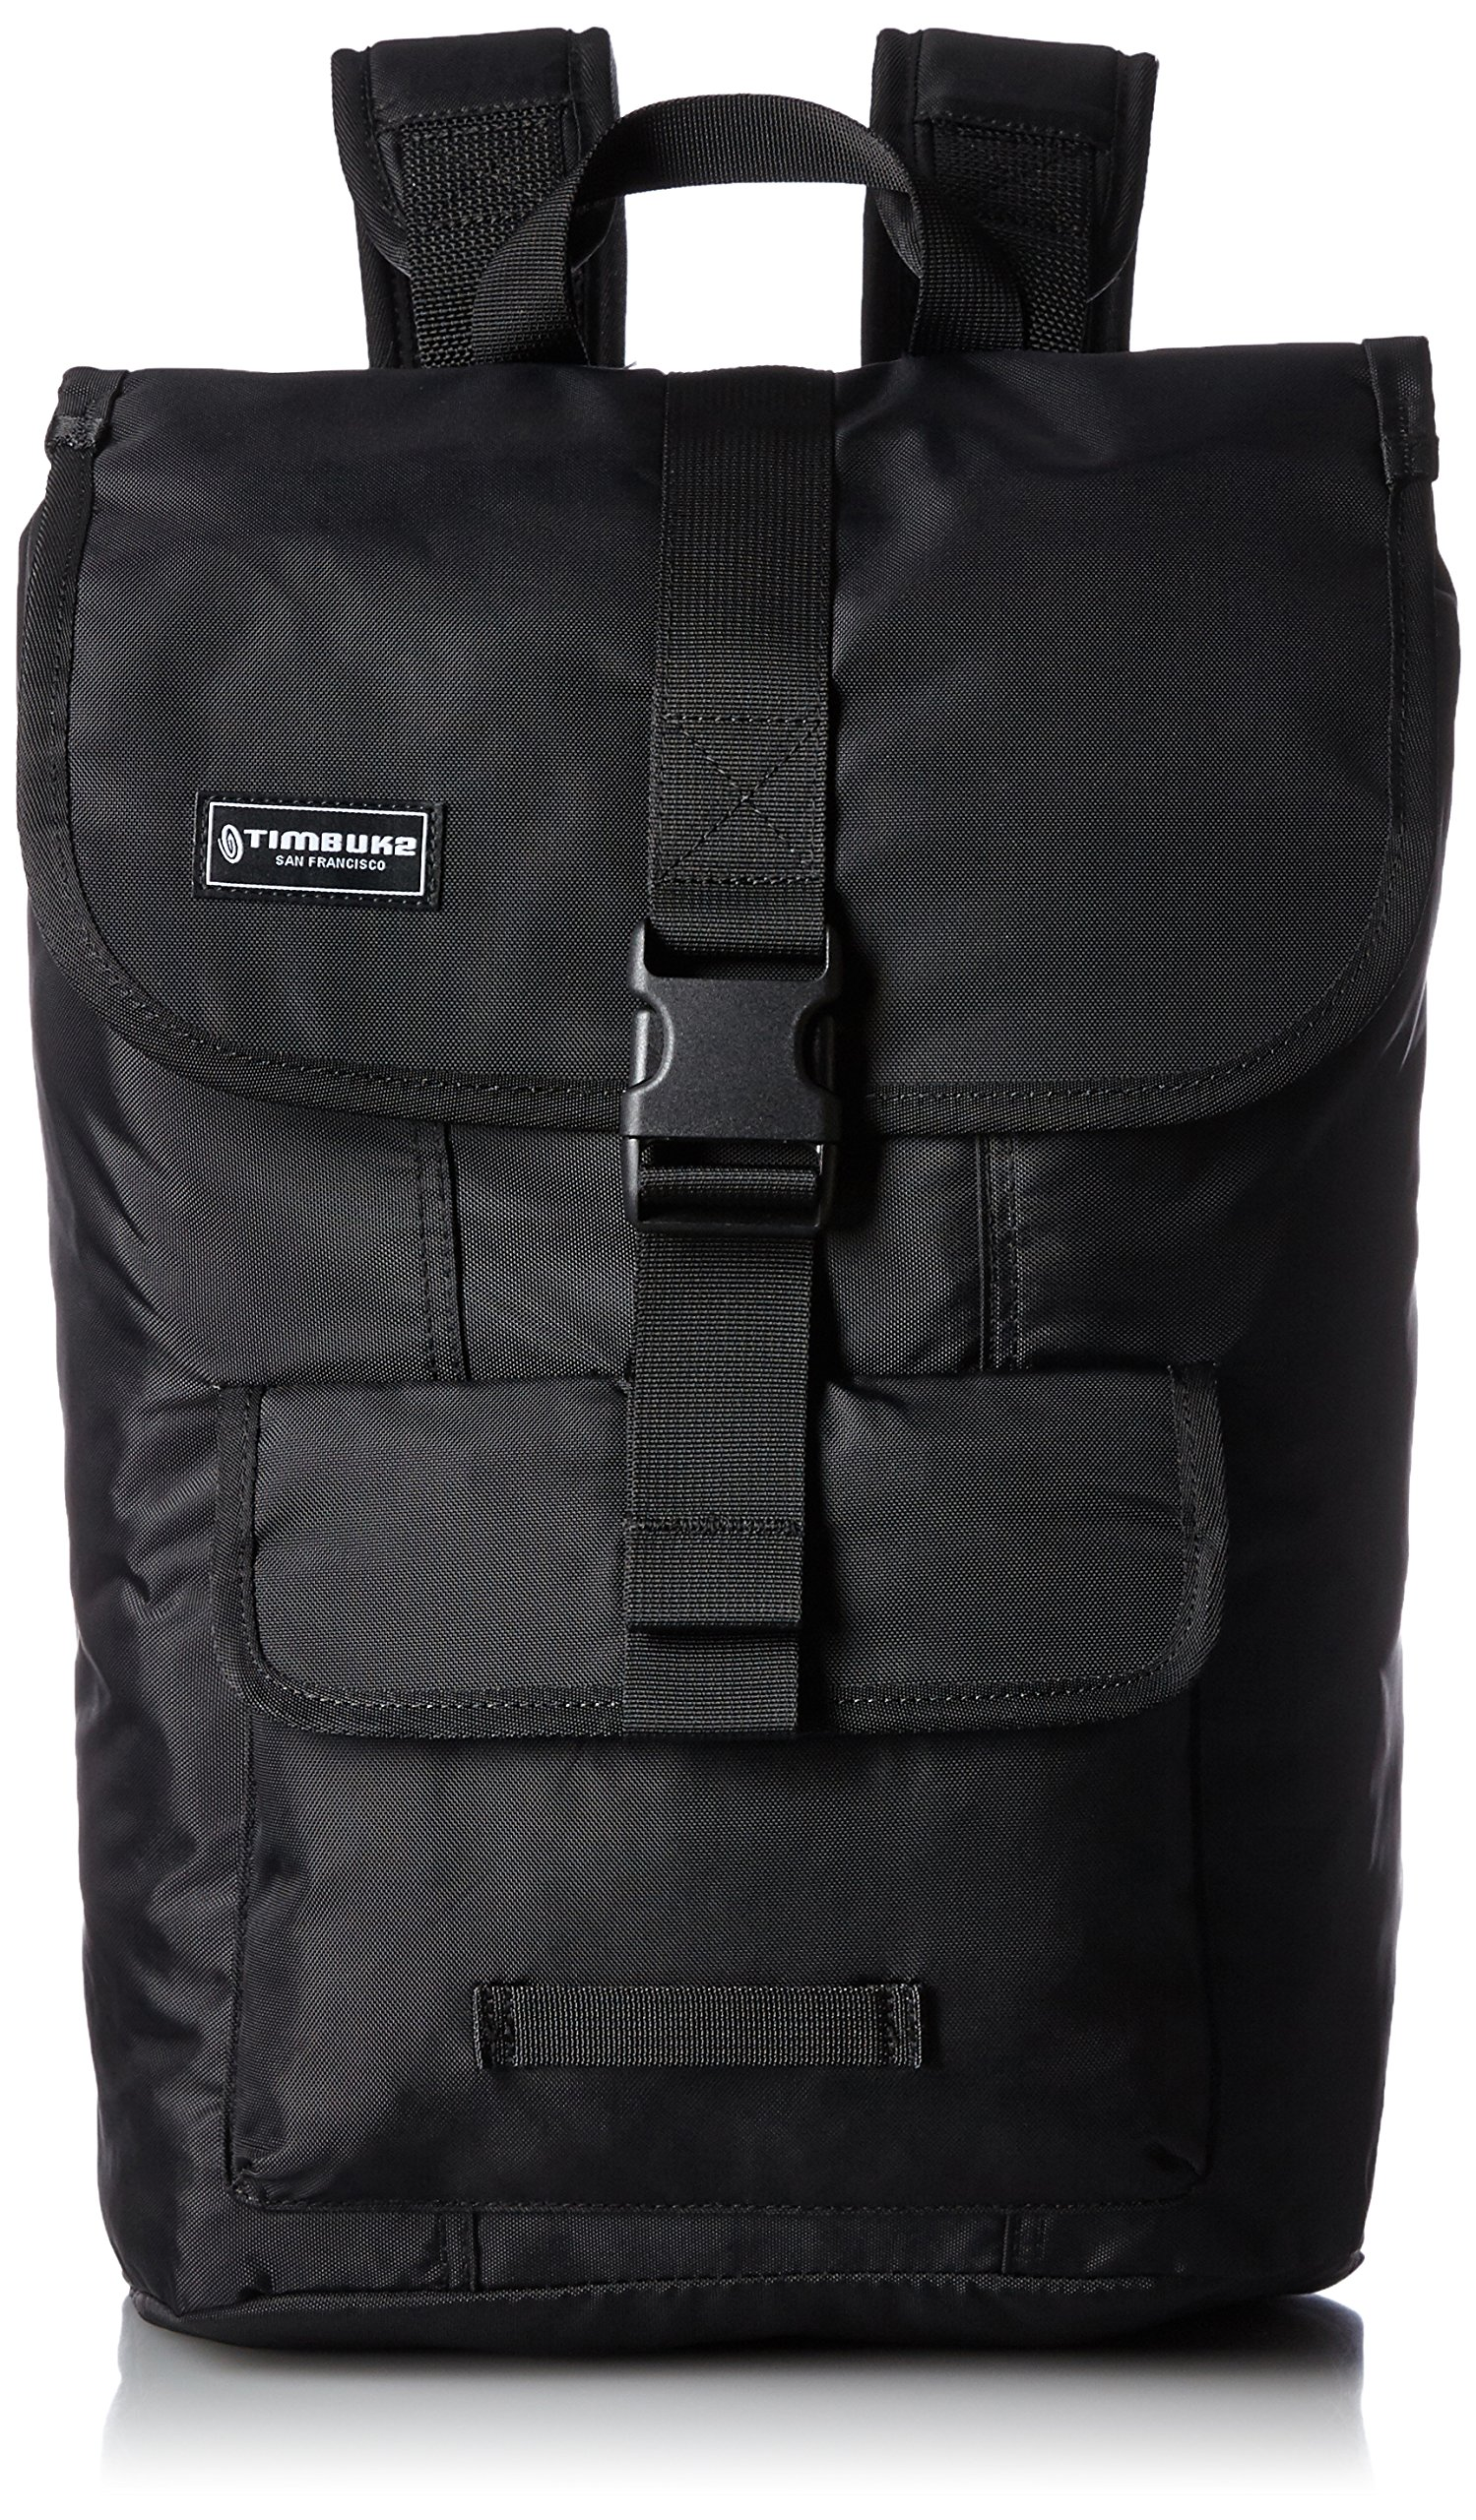 timbuk2 Moby Laptop Backpack, Black, One Size